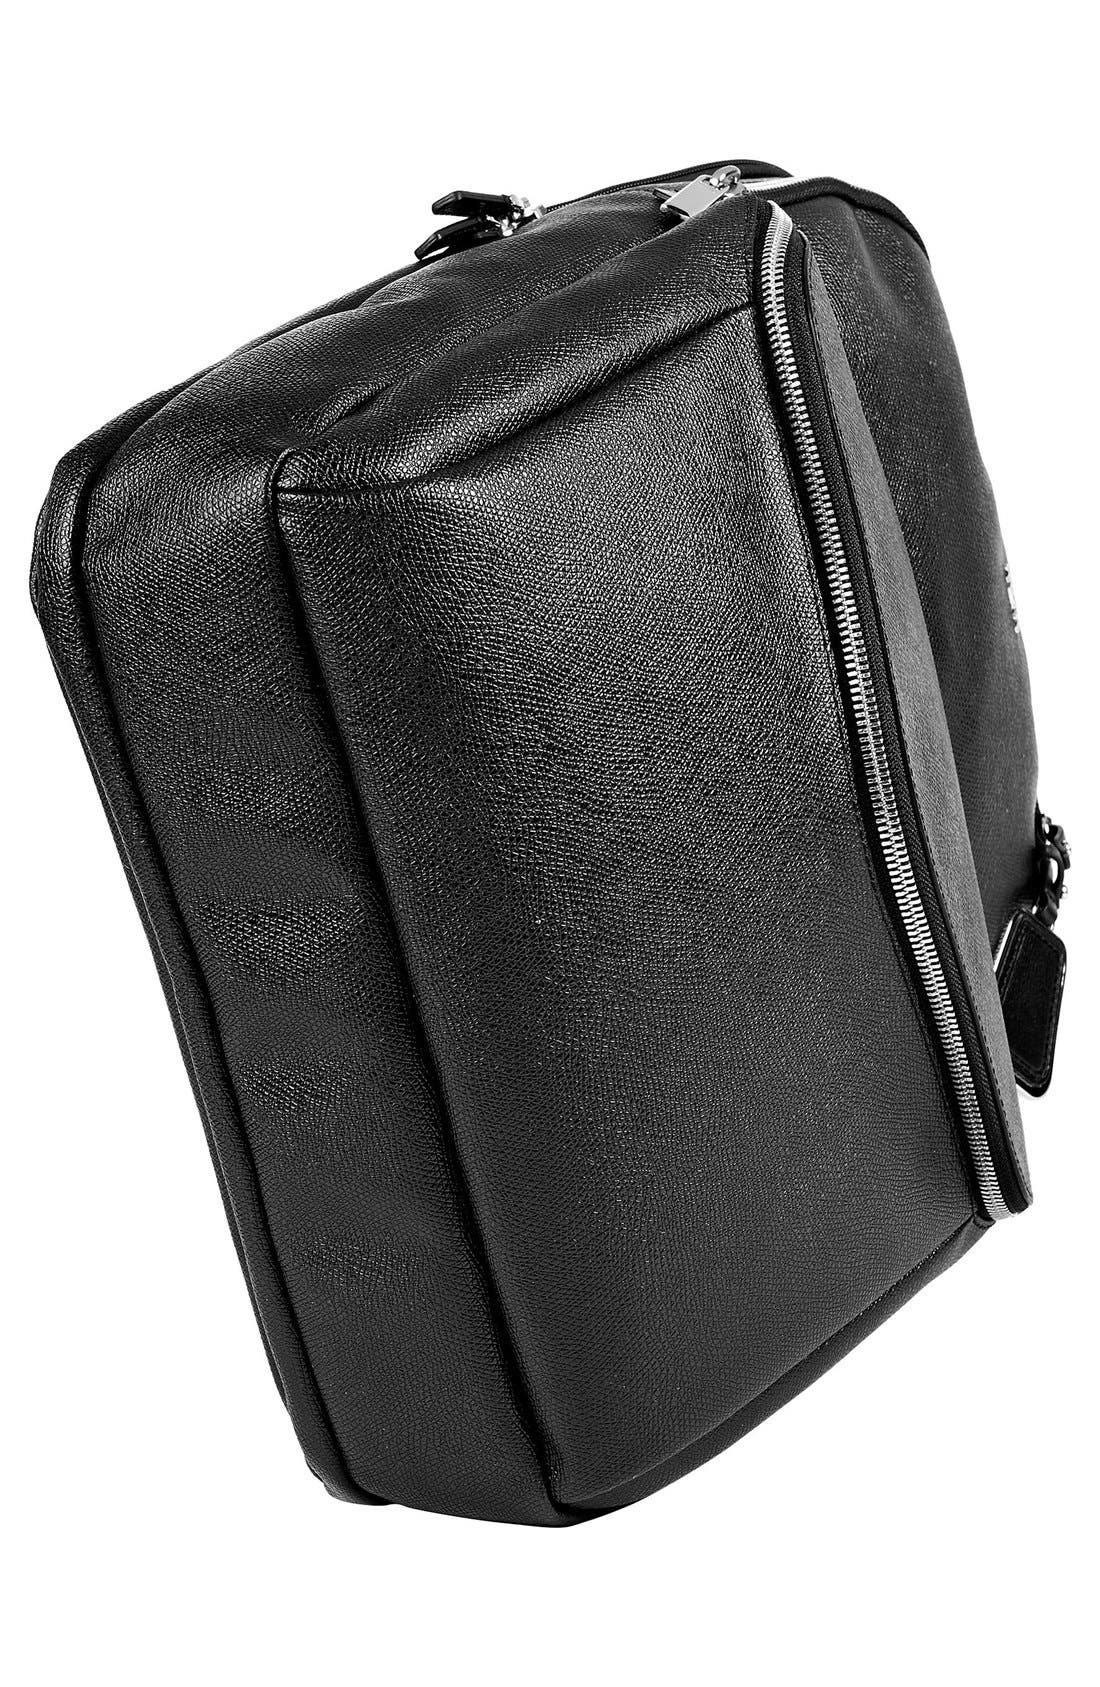 'Sinclair Harlow' Coated Canvas Laptop Backpack,                             Alternate thumbnail 5, color,                             002